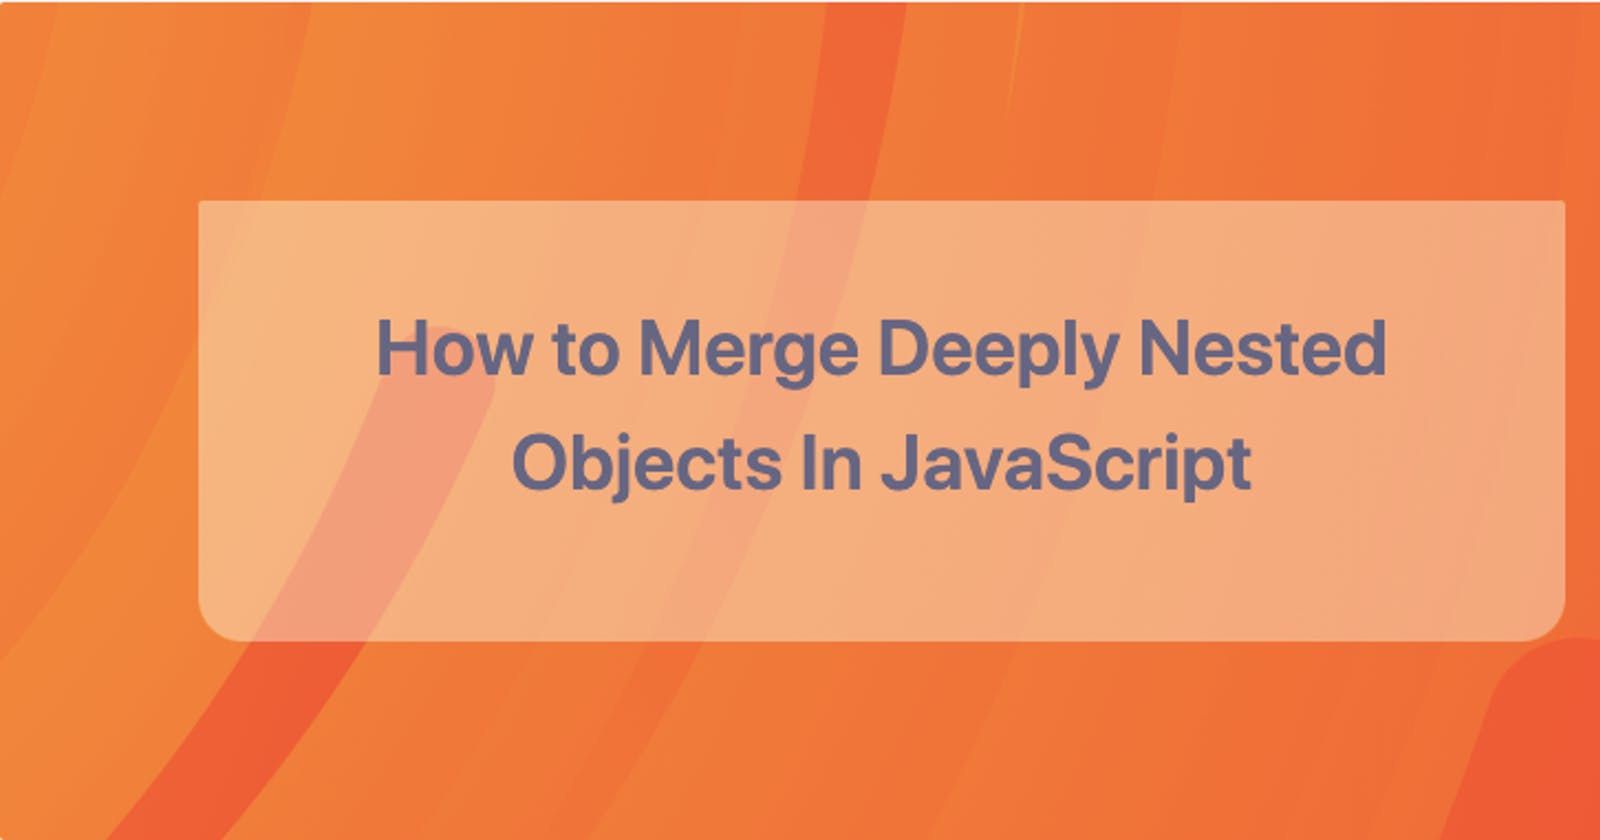 How to Merge Deeply Nested Objects in JavaScript